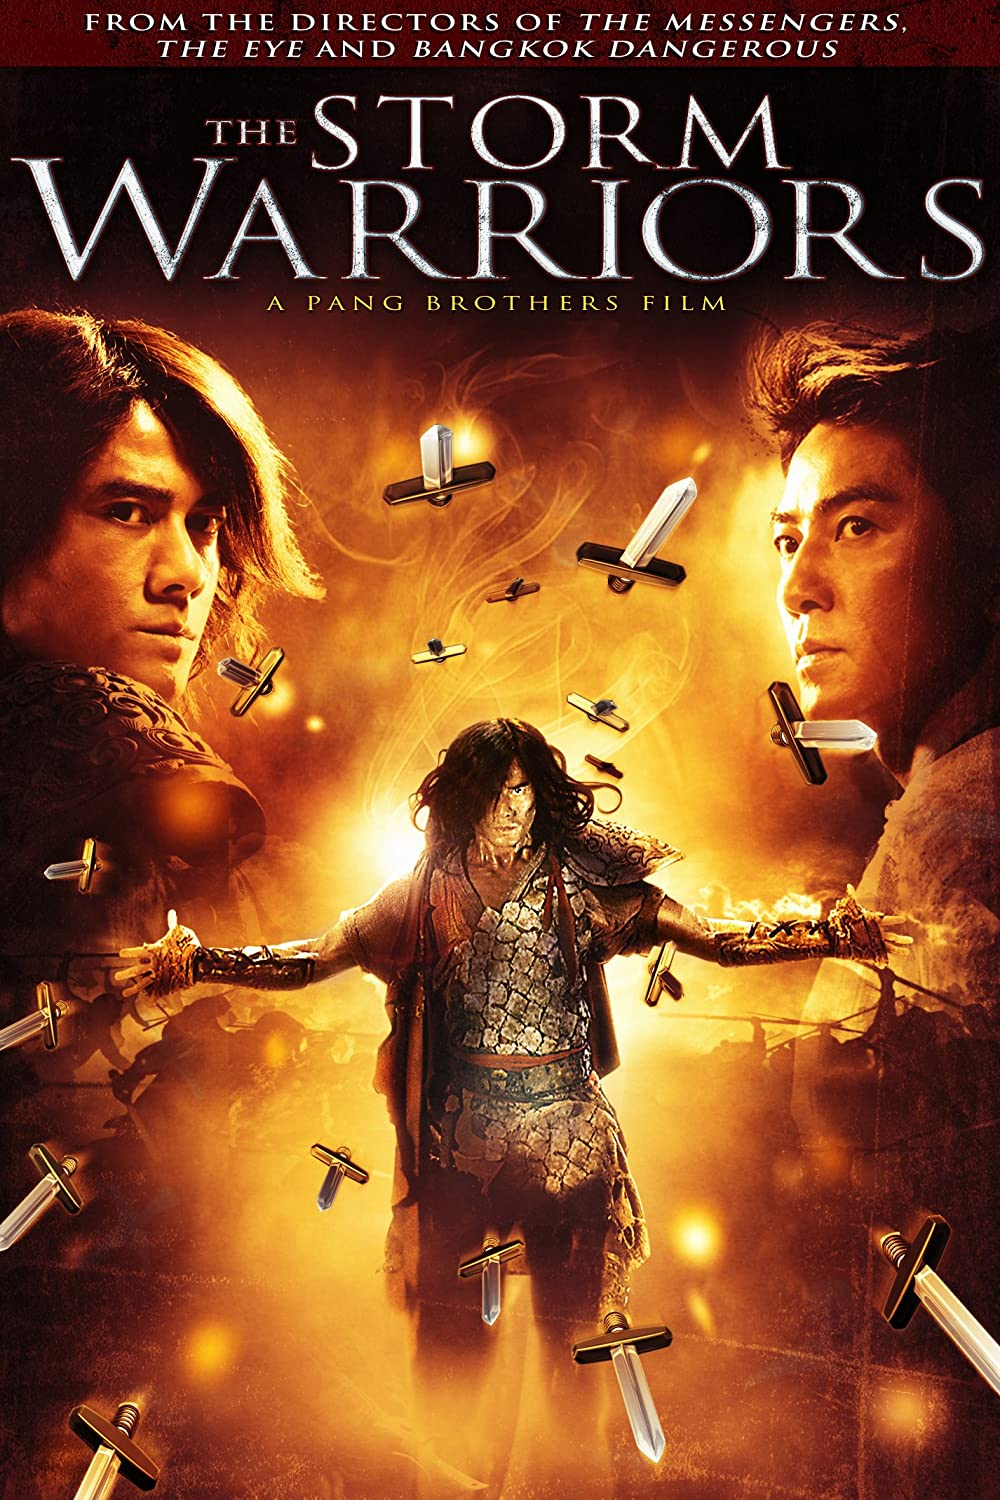 The Storm Warriors 2009 Hindi Dual Audio 720p BluRay ESub 1.1GB x264 AAC